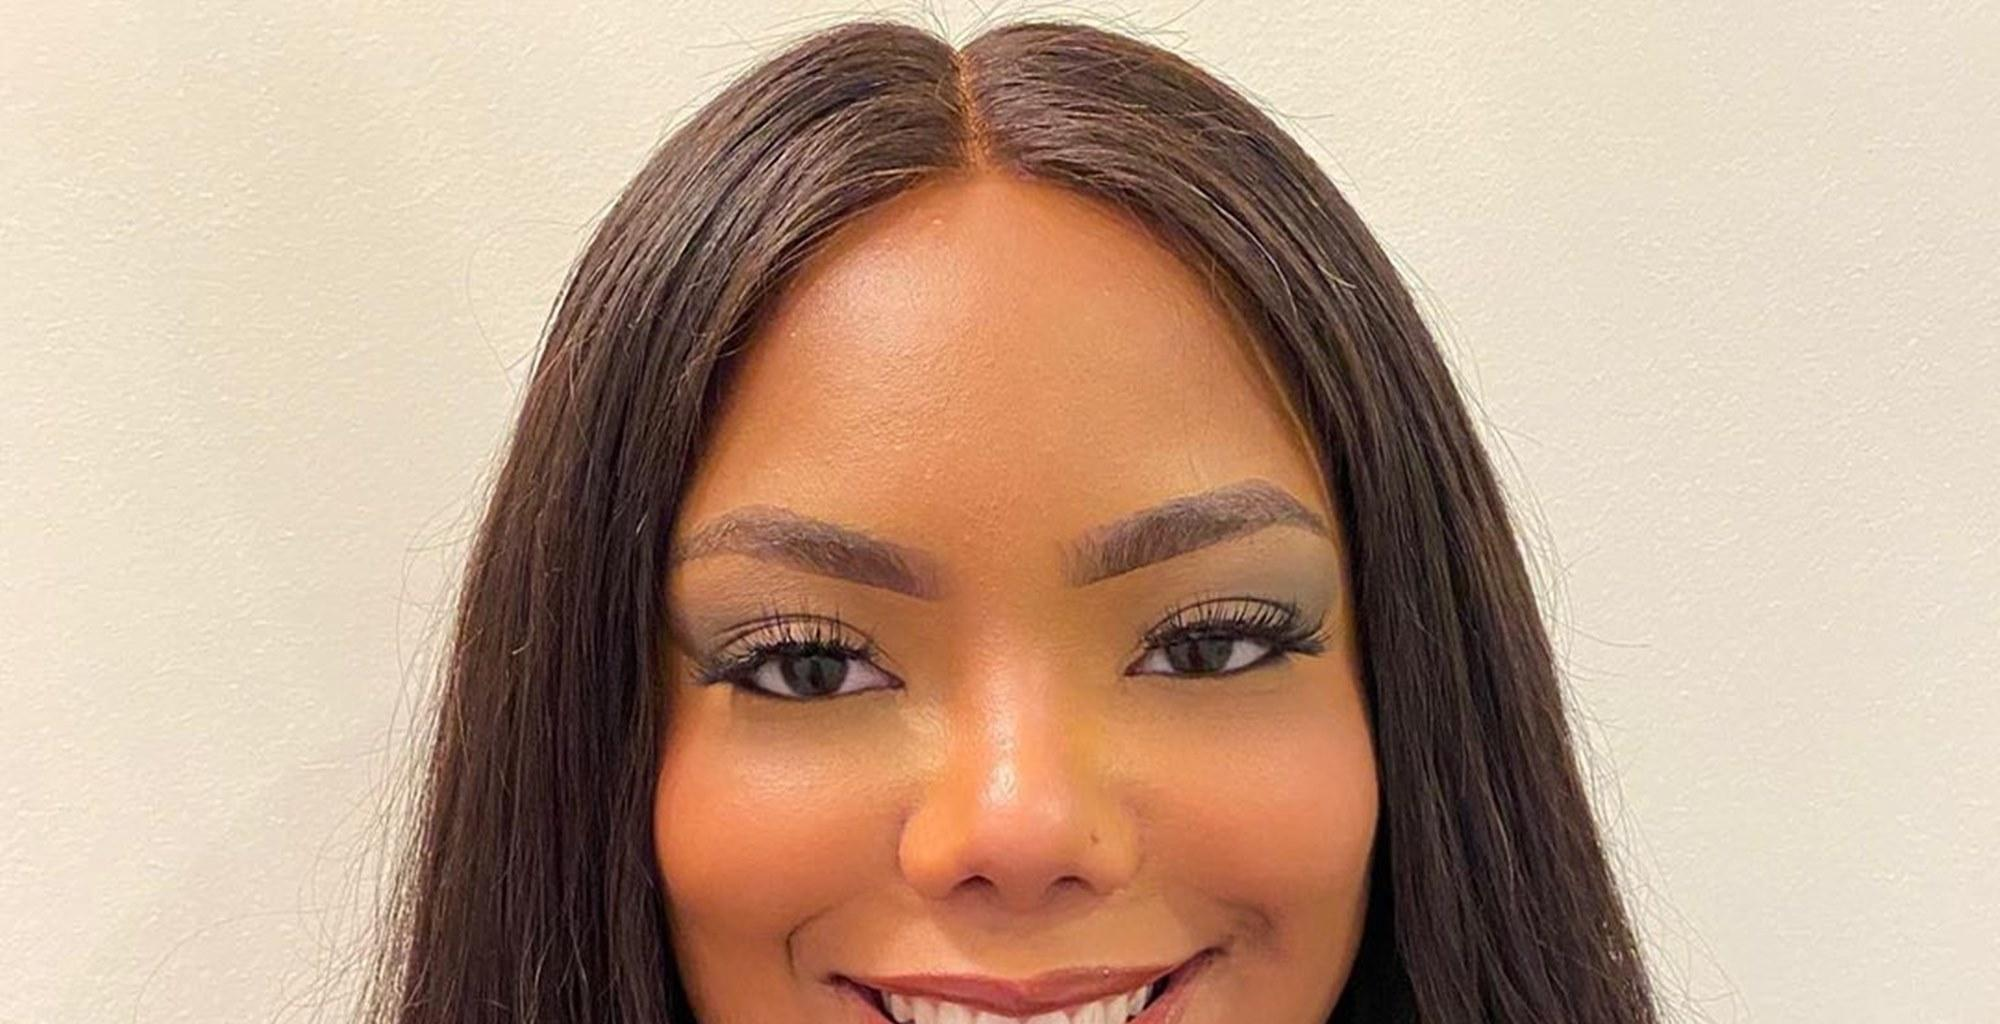 Kandi Burruss's Daugther, Riley Burruss, Is Enjoying Life In New Photos, And She Has A Message For The People Bashing Her Nose Job